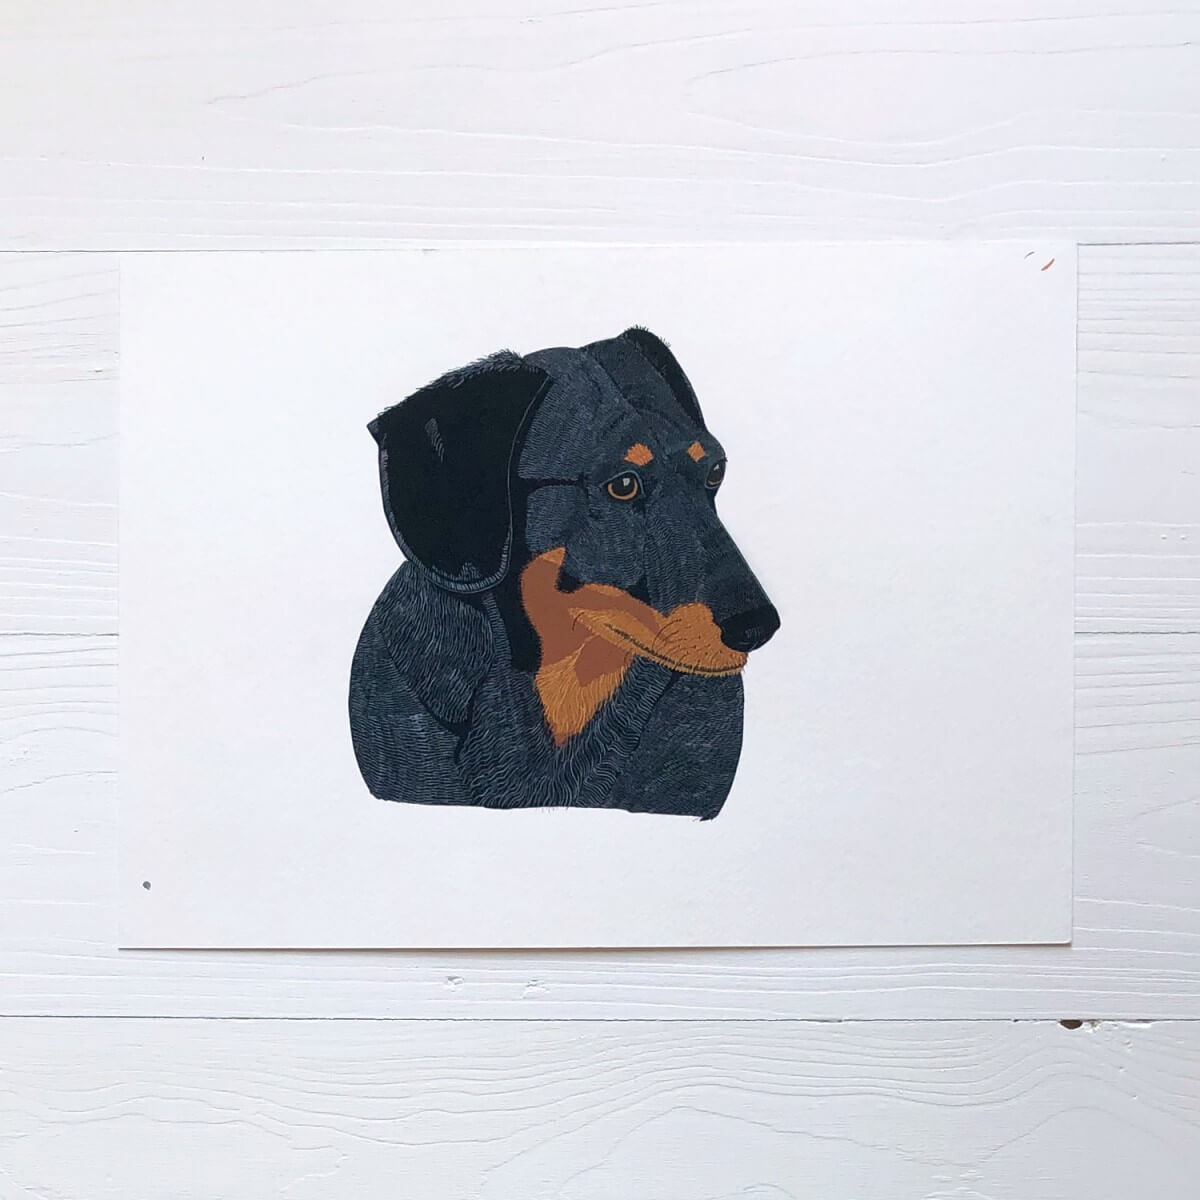 Dachshund Dog Original Gouache Painting By Bird